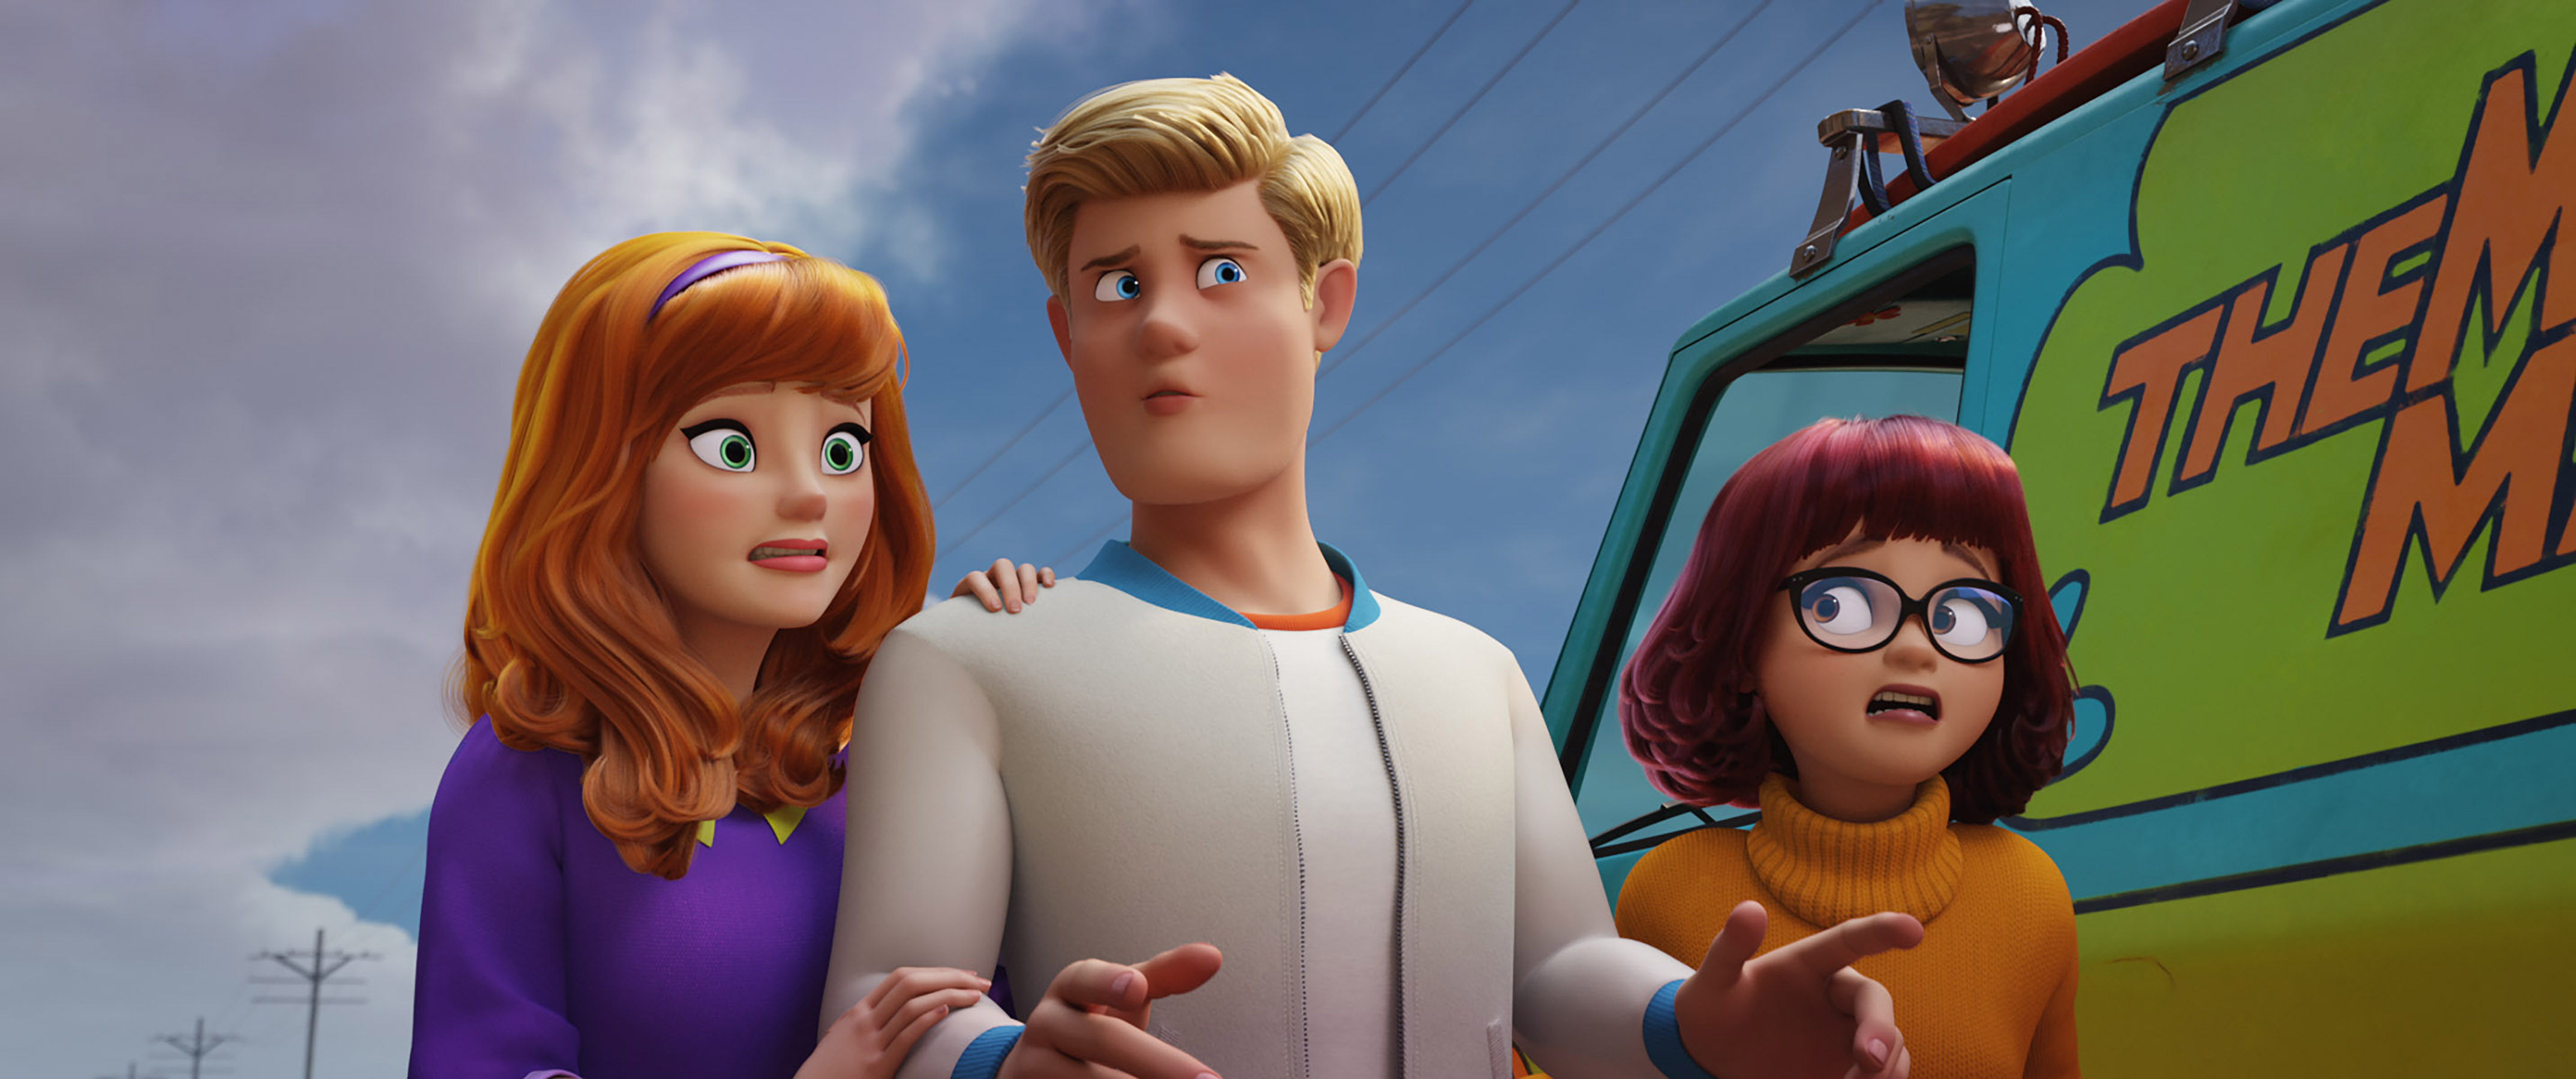 "(L-r) Daphne voiced by AMANDA SEYFRIED, Fred voiced by ZAC EFRON and Velma voiced by GINA RODRIGUEZ in the new animated adventure ""SCOOB!"" from Warner Bros. Pictures and Warner Animation Group. Courtesy of Warner Bros. Pictures"